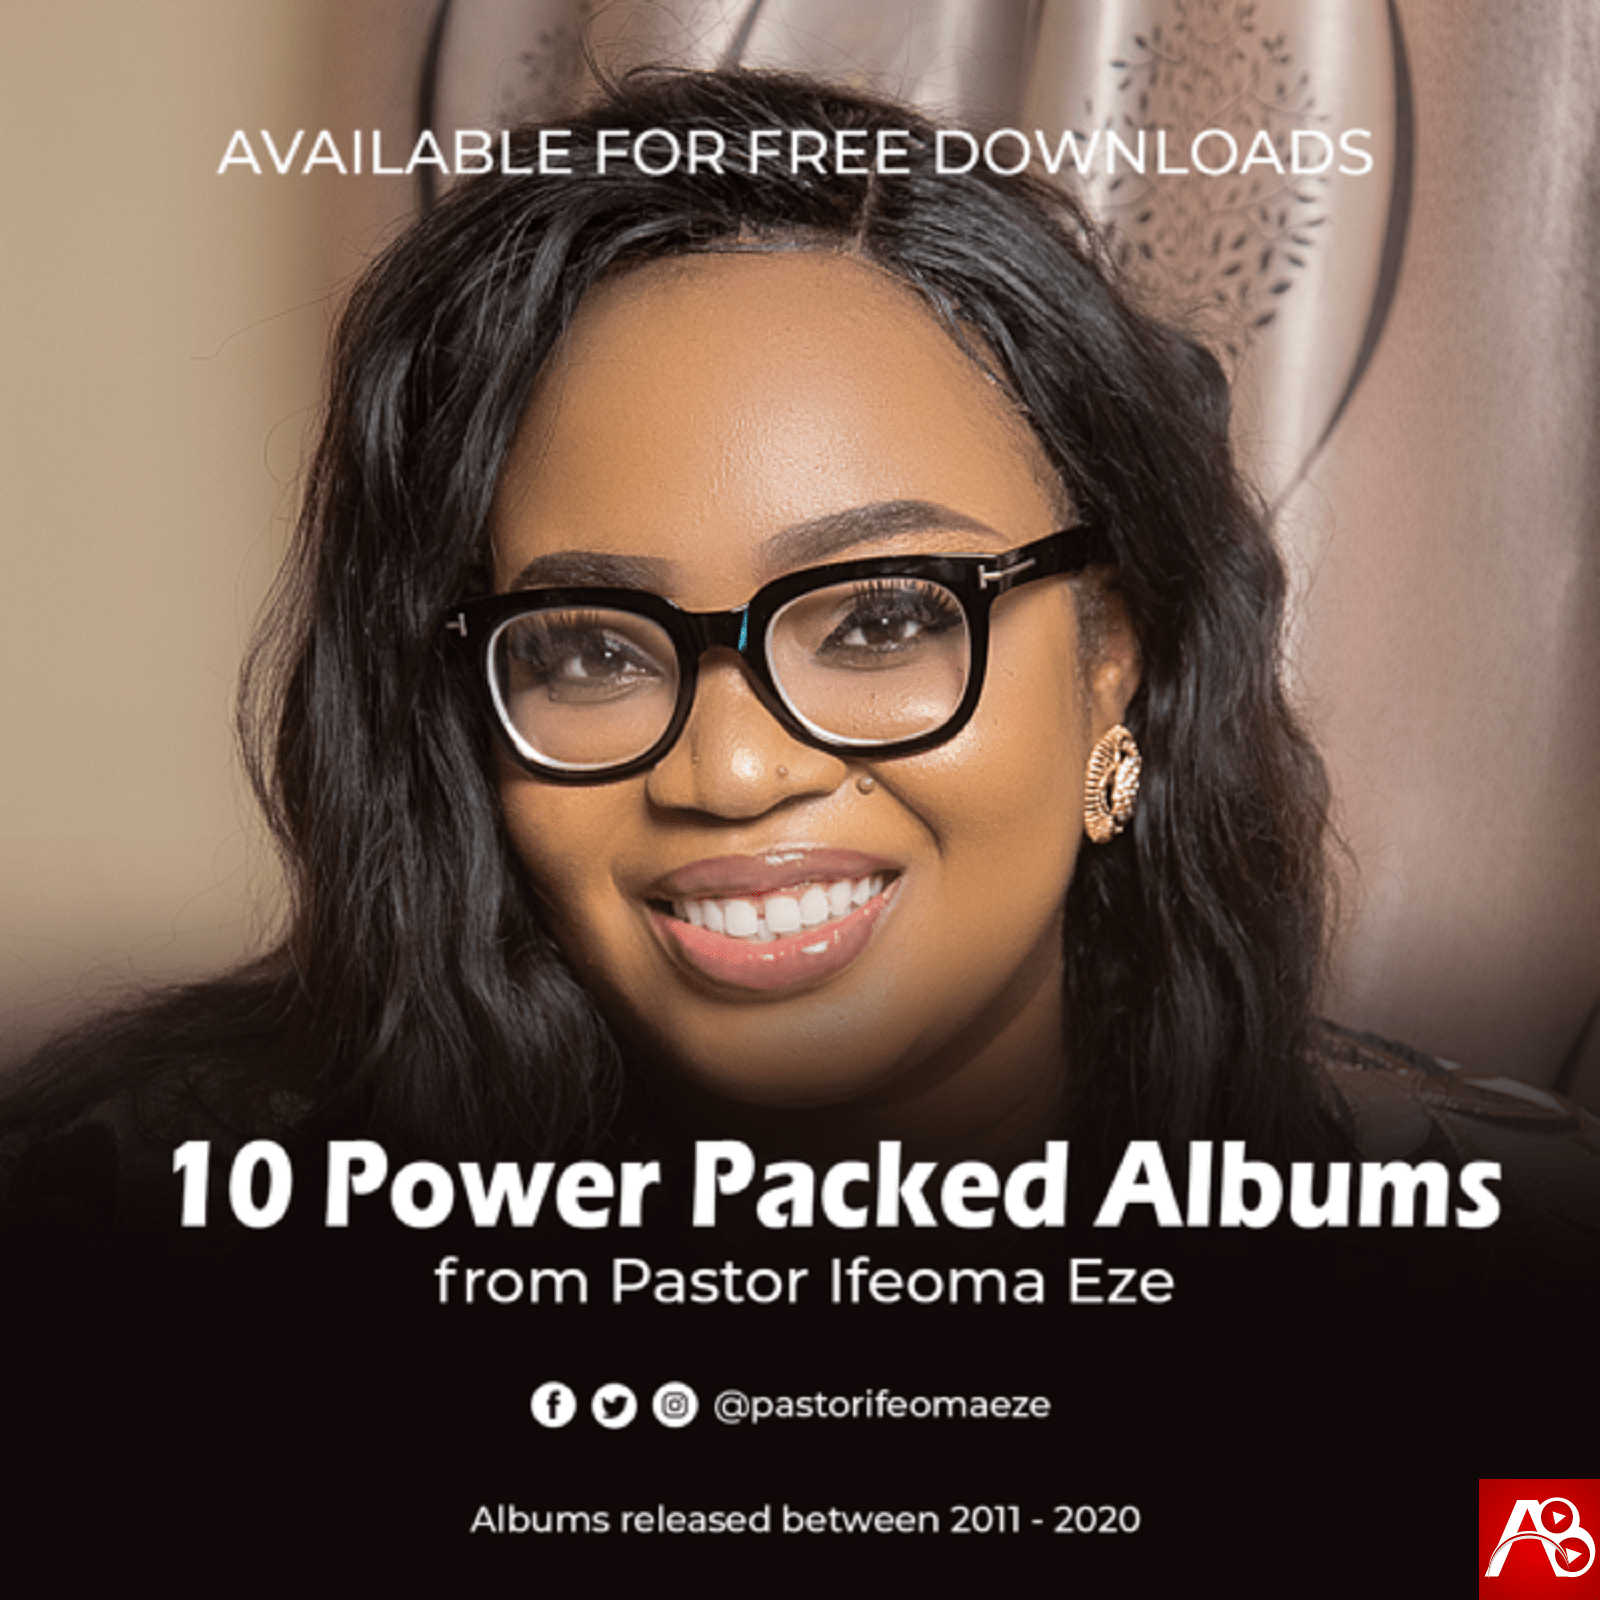 10 Power Packed Albums from Pastor Ifeoma Eze